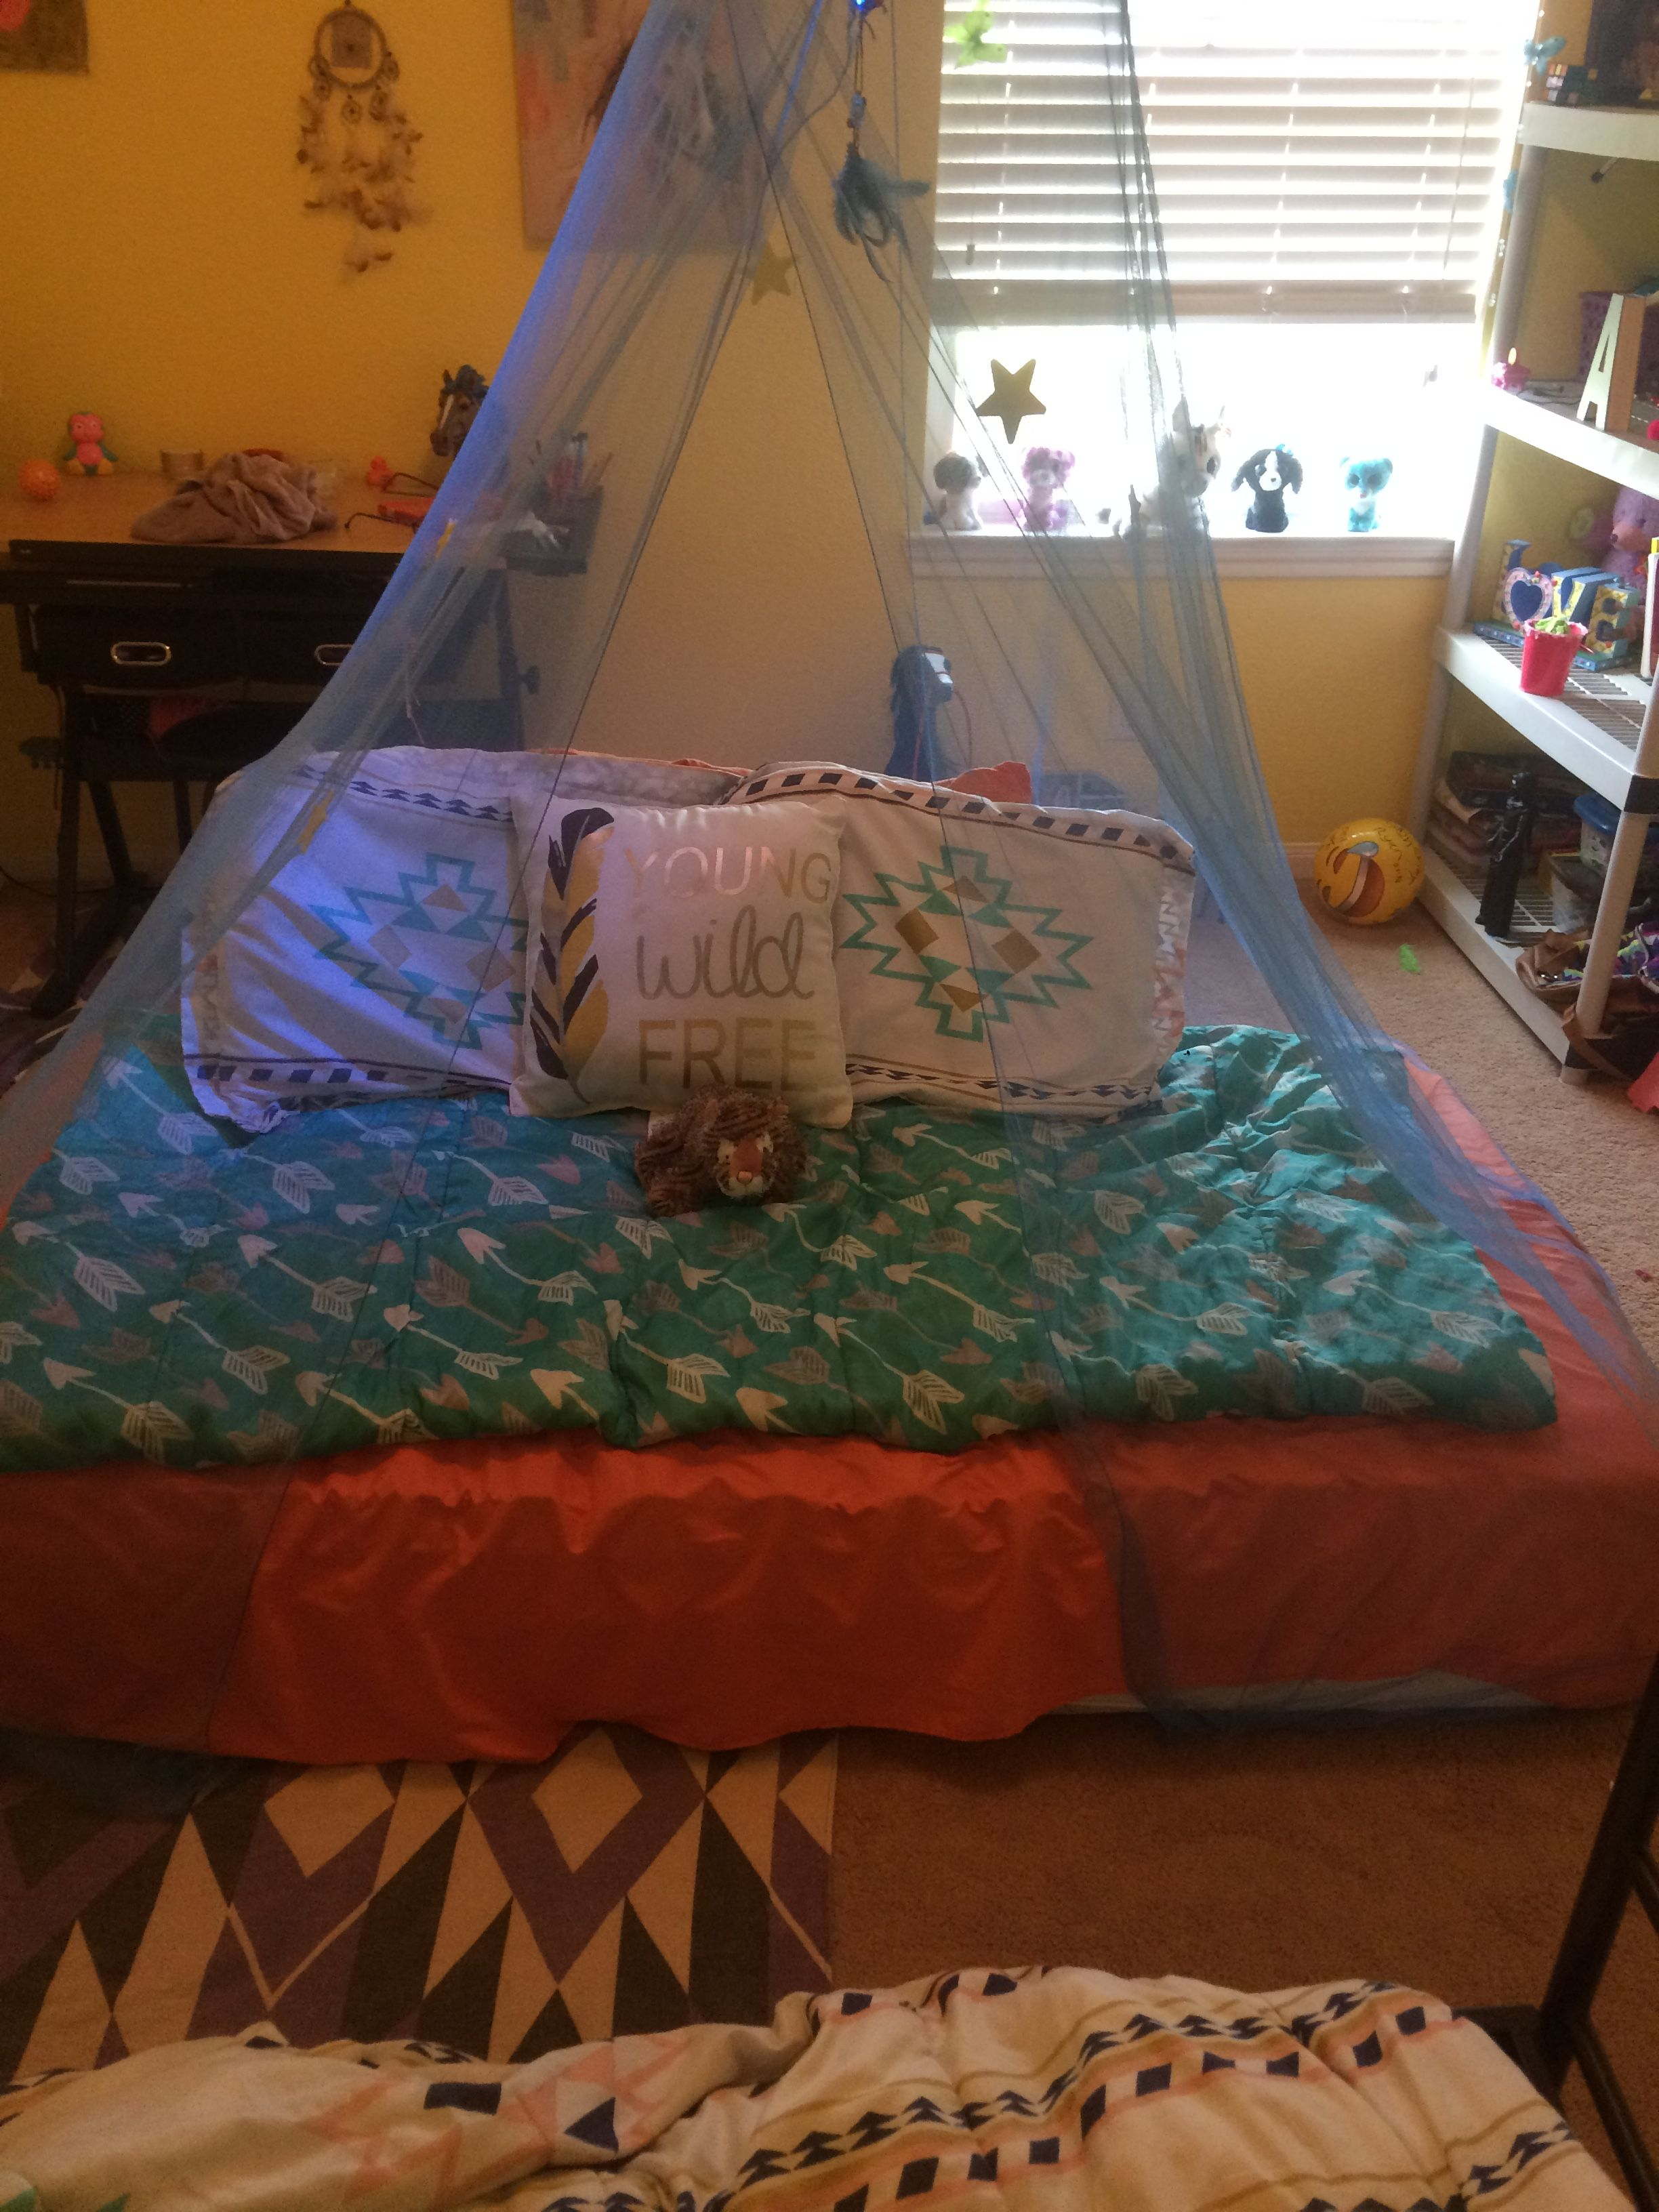 Pin by Keon Anderson on Home made indoor tent Indoor